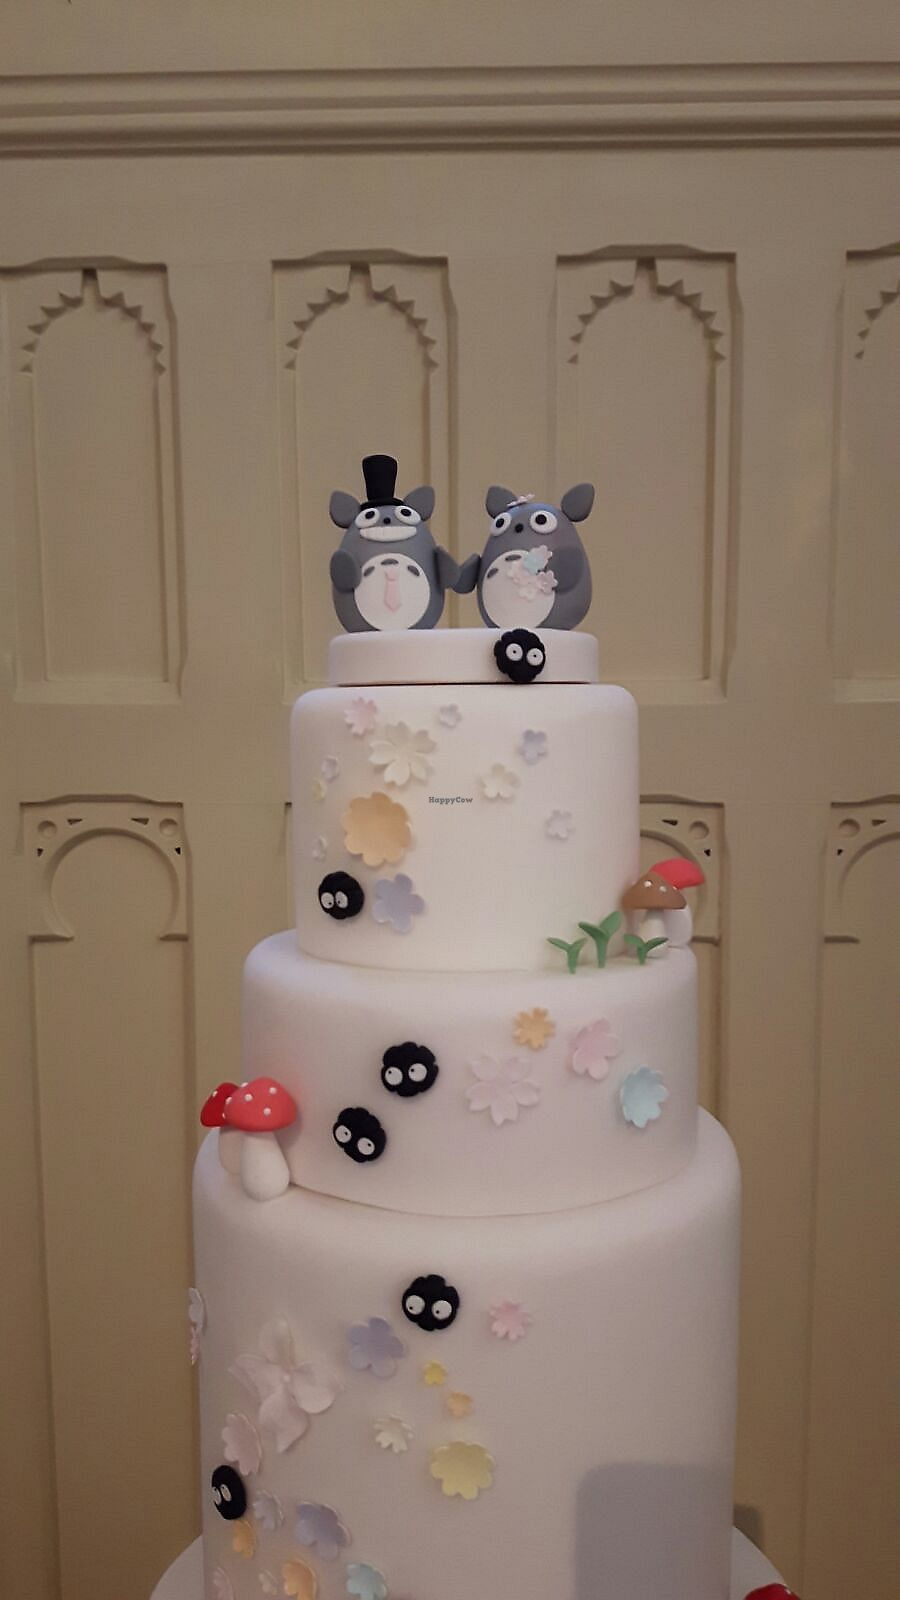 "Photo of Tiny Sarah's Cakes  by <a href=""/members/profile/kasakaa"">kasakaa</a> <br/>Totoro Wedding Cake - toppers <br/> April 19, 2018  - <a href='/contact/abuse/image/83763/388154'>Report</a>"